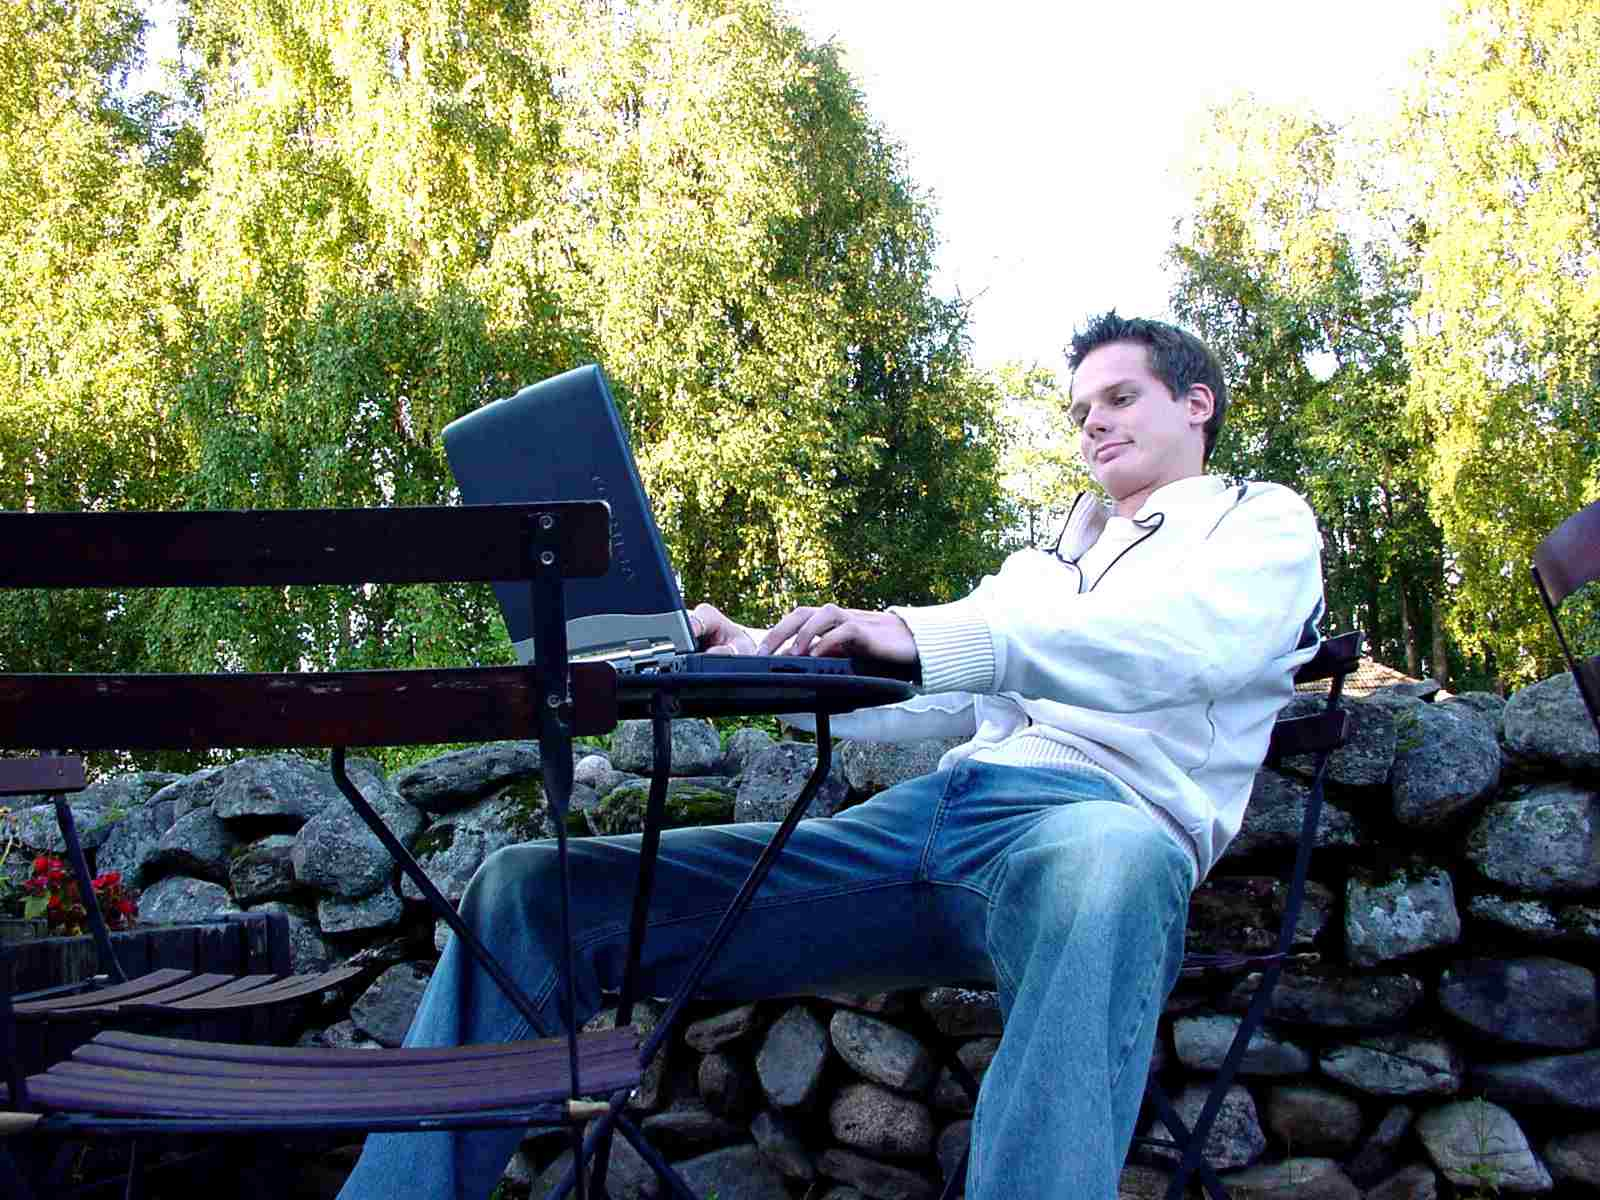 Man sitting with laptop on the table